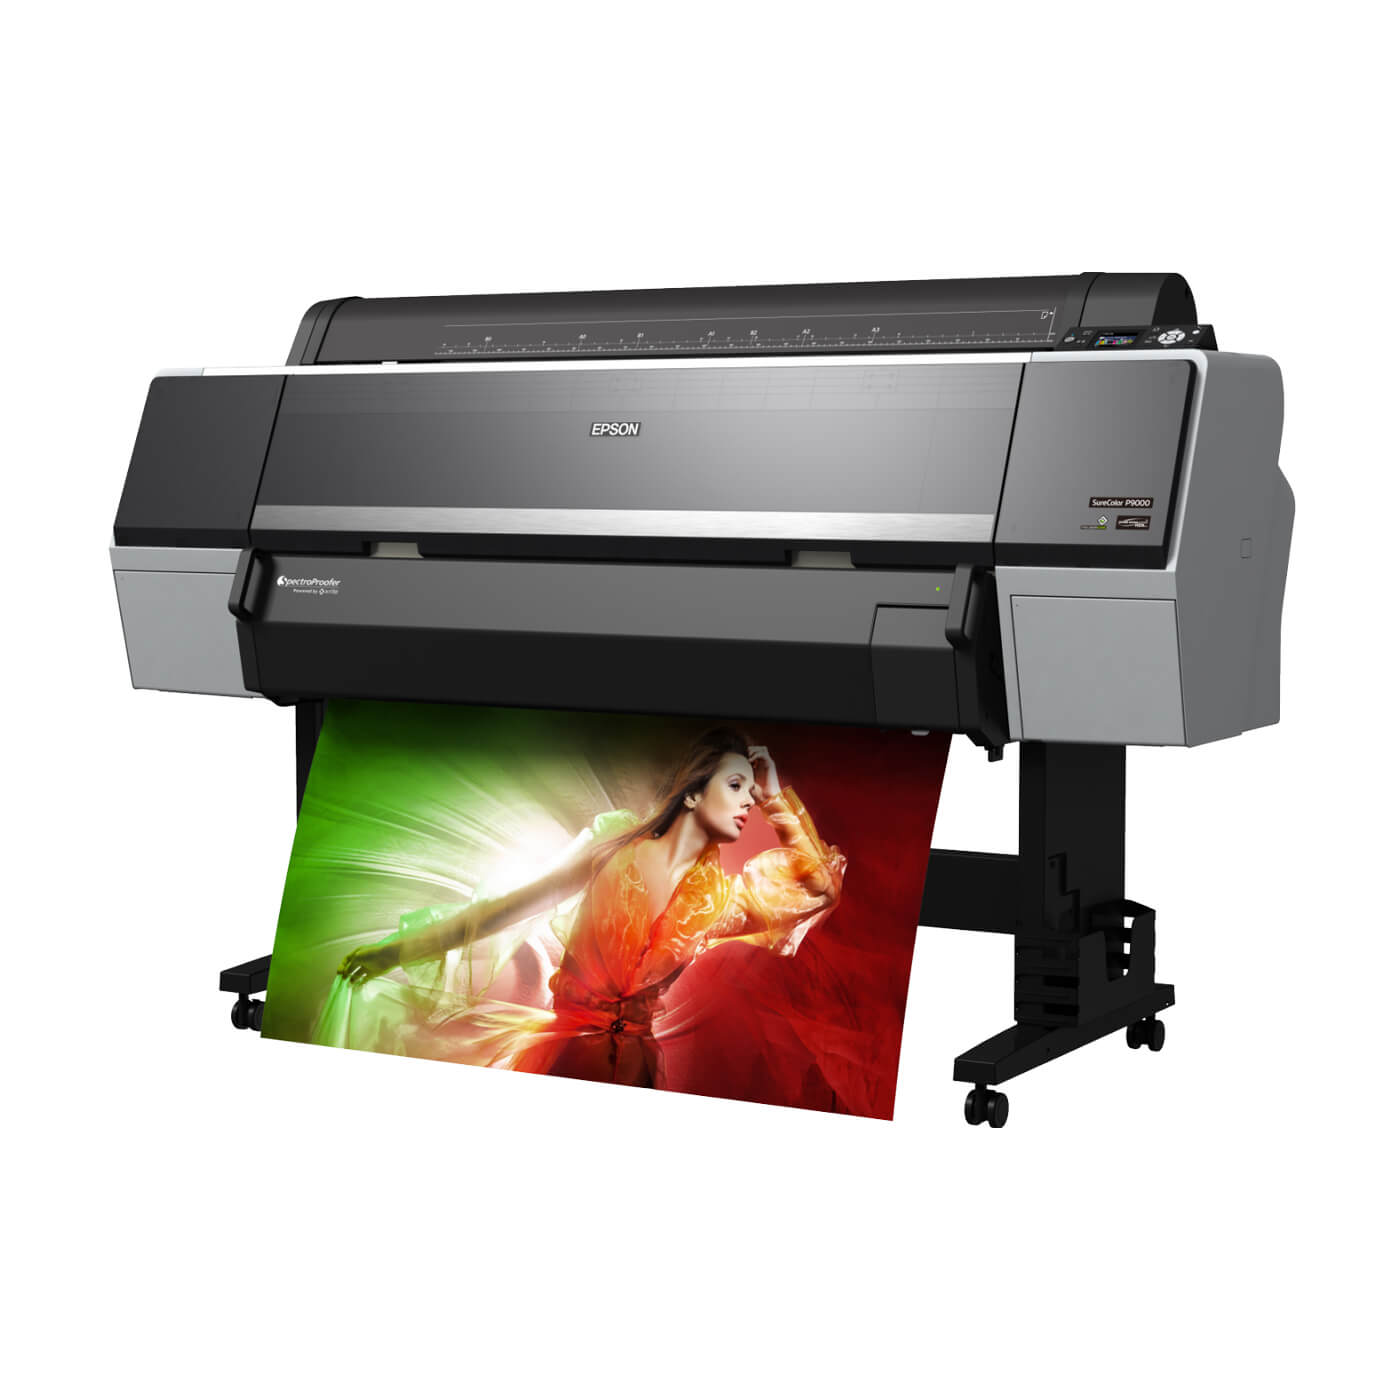 EPSON SURECOLOR P9000 TREIBER WINDOWS 8